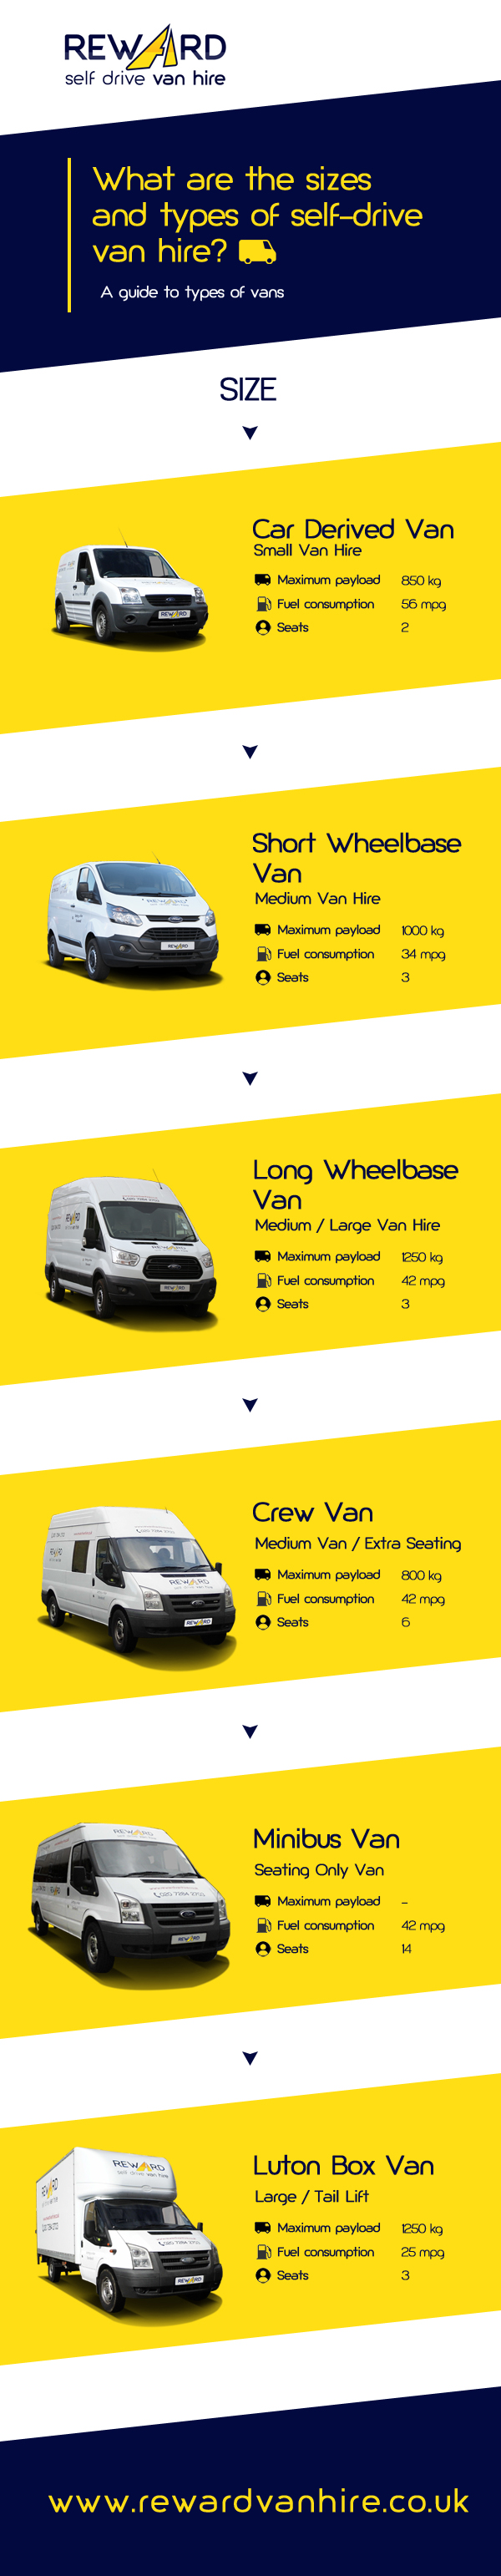 sizes and types of van hire vehicles